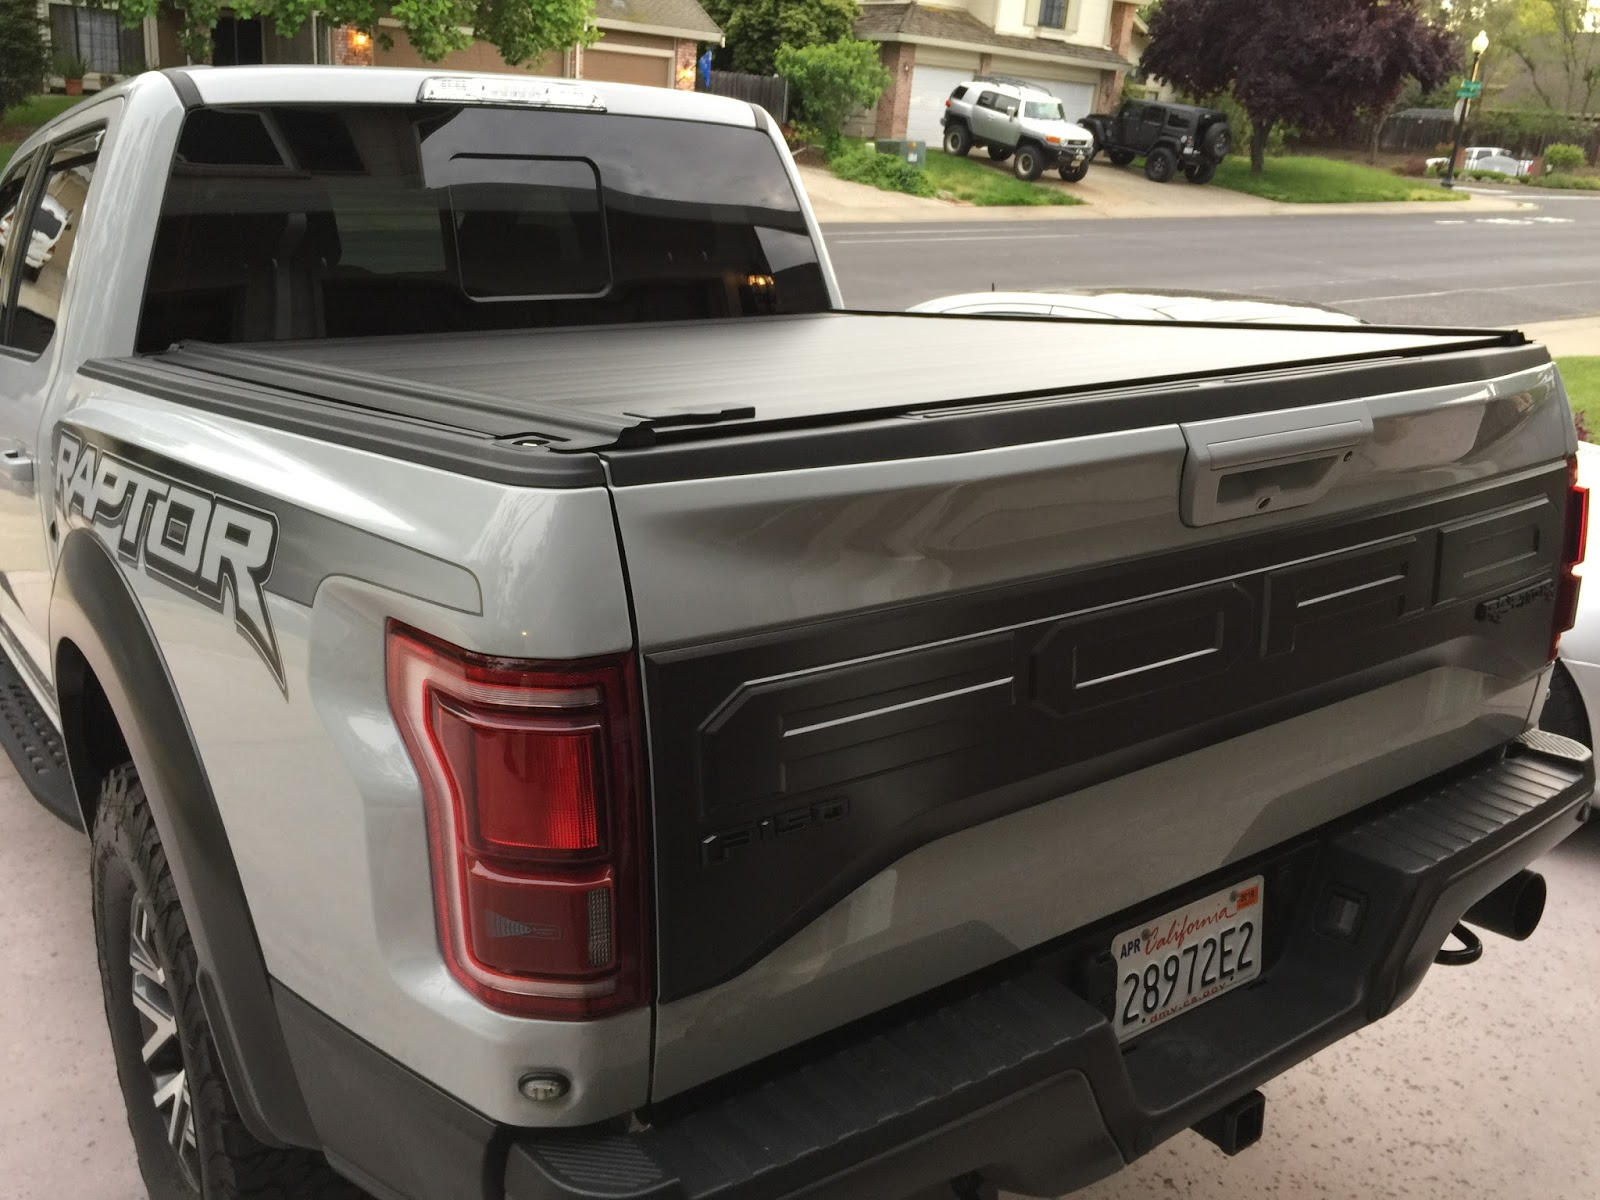 roll tri gator reviews covers bed truck cover tonneau fold up trax retractable